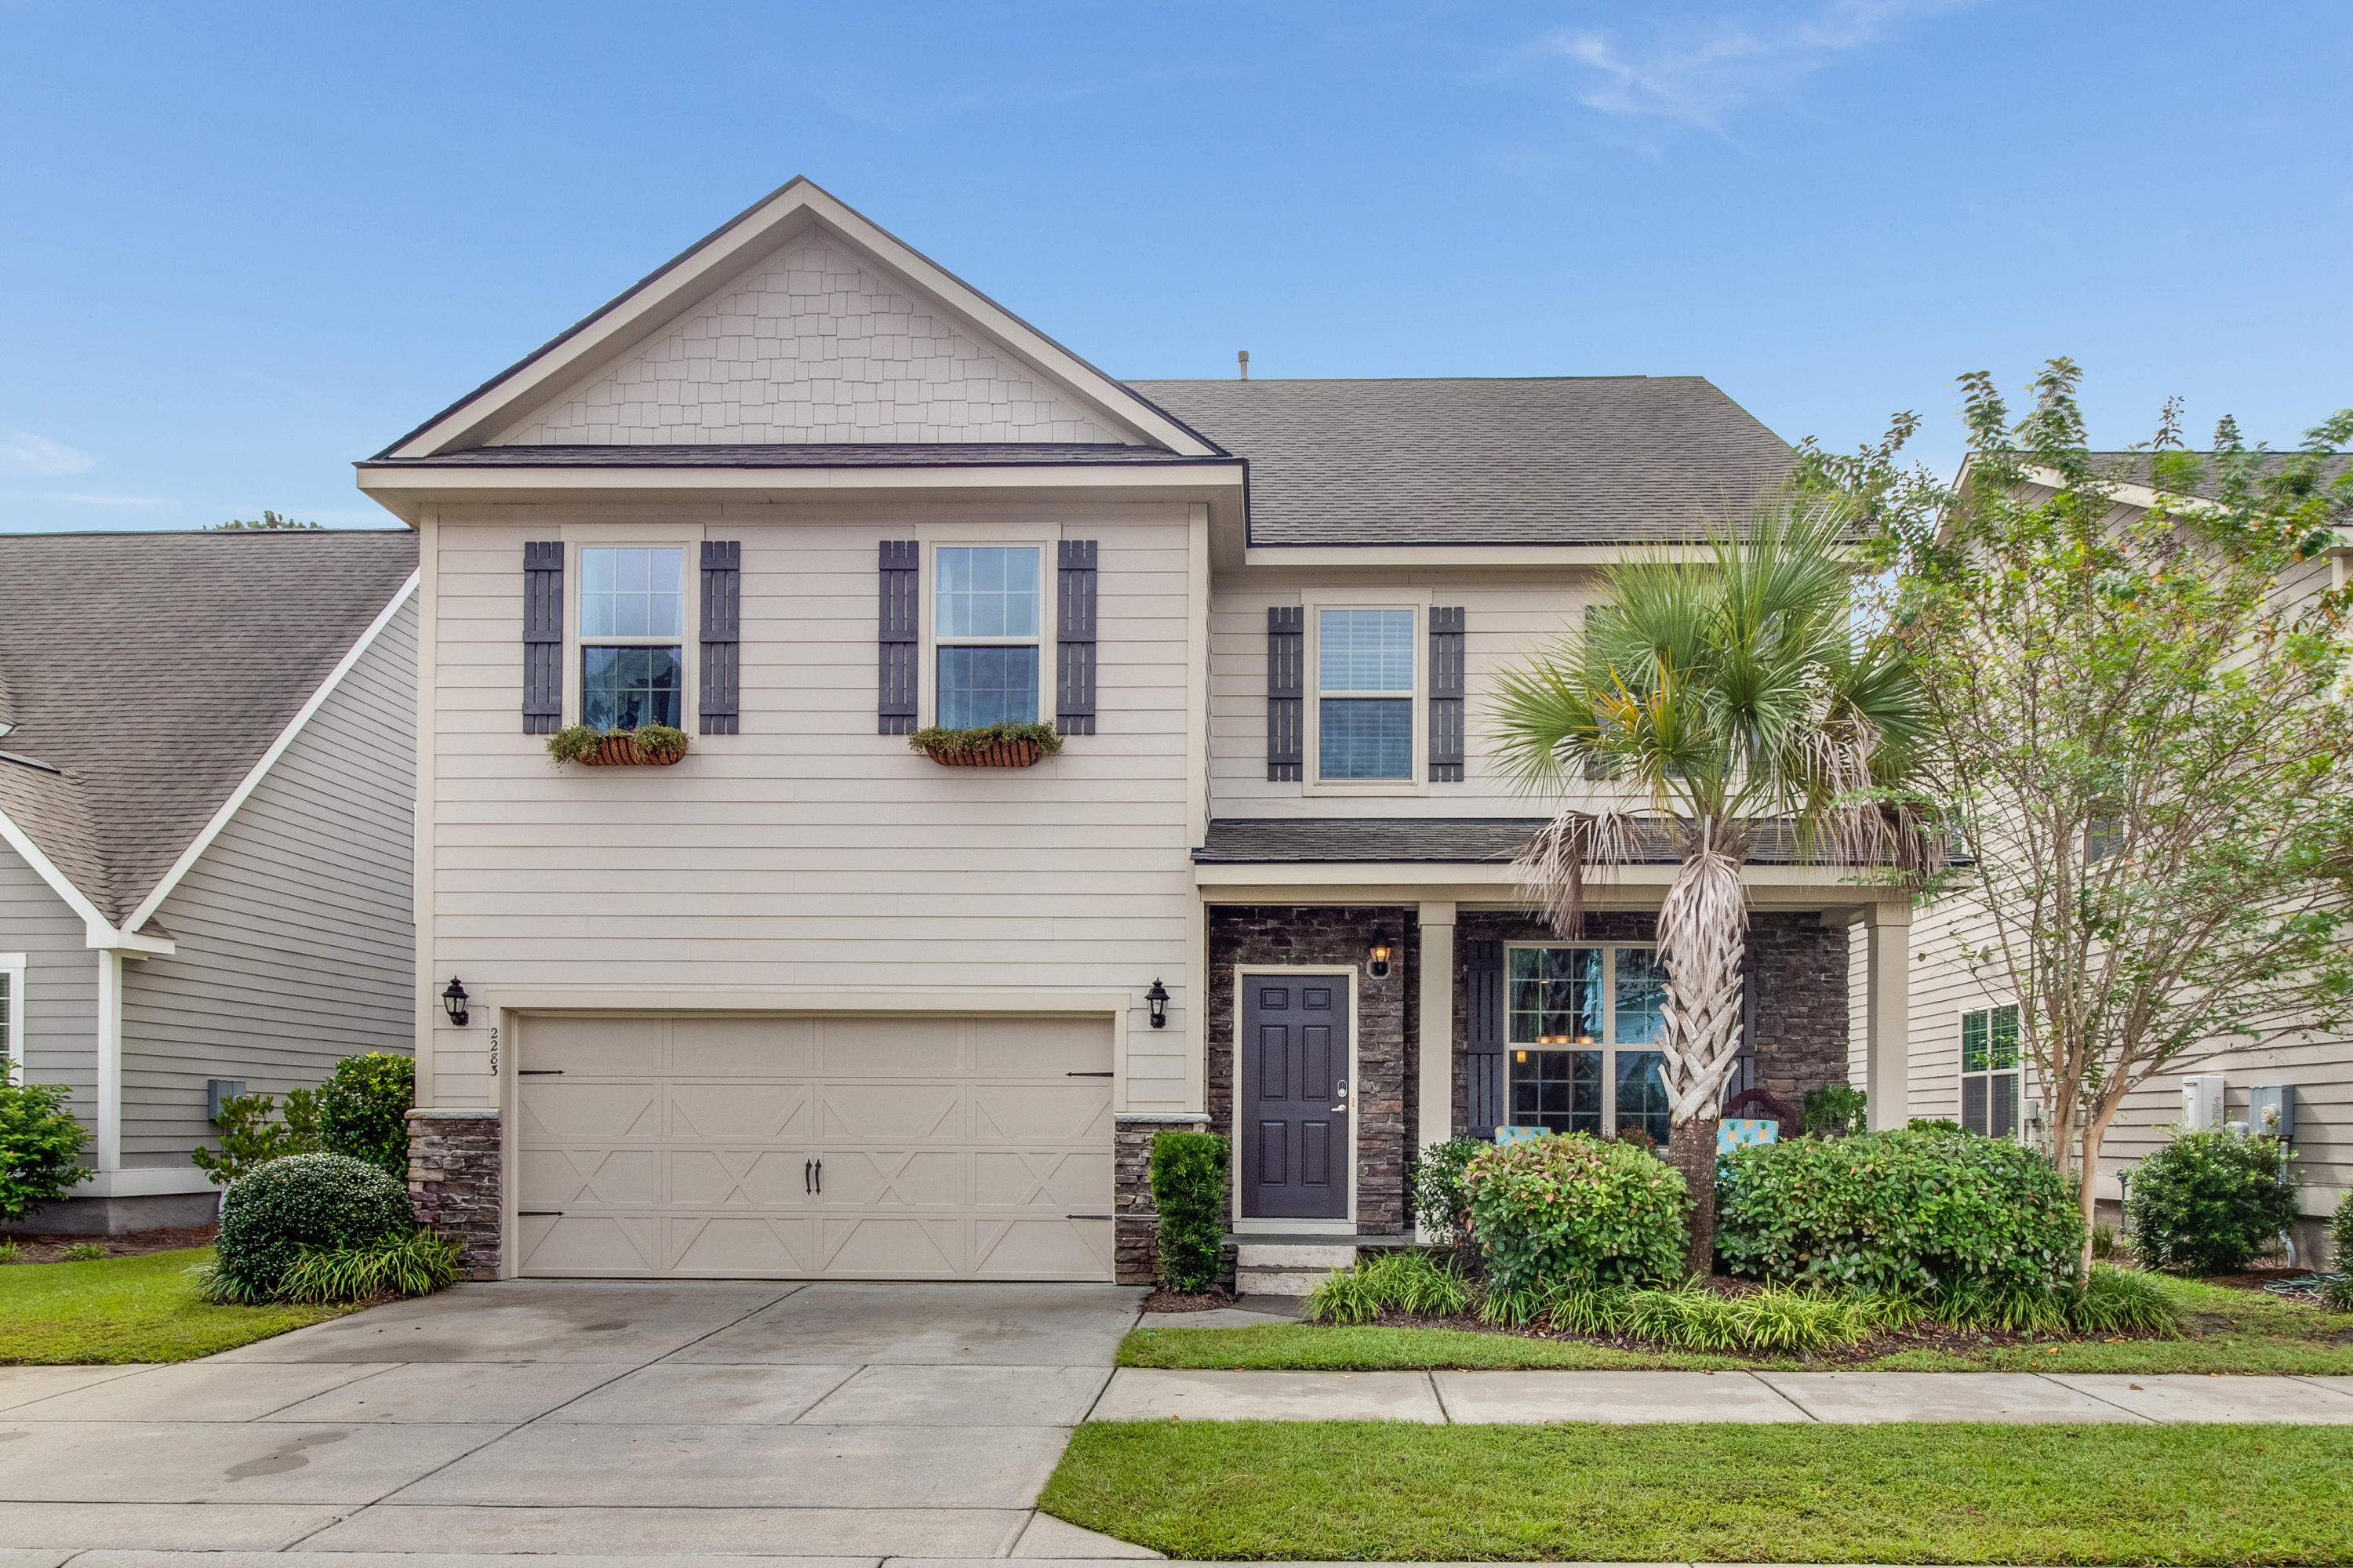 Sweetgrass Village Homes For Sale - 2283 Show Basket, Mount Pleasant, SC - 38